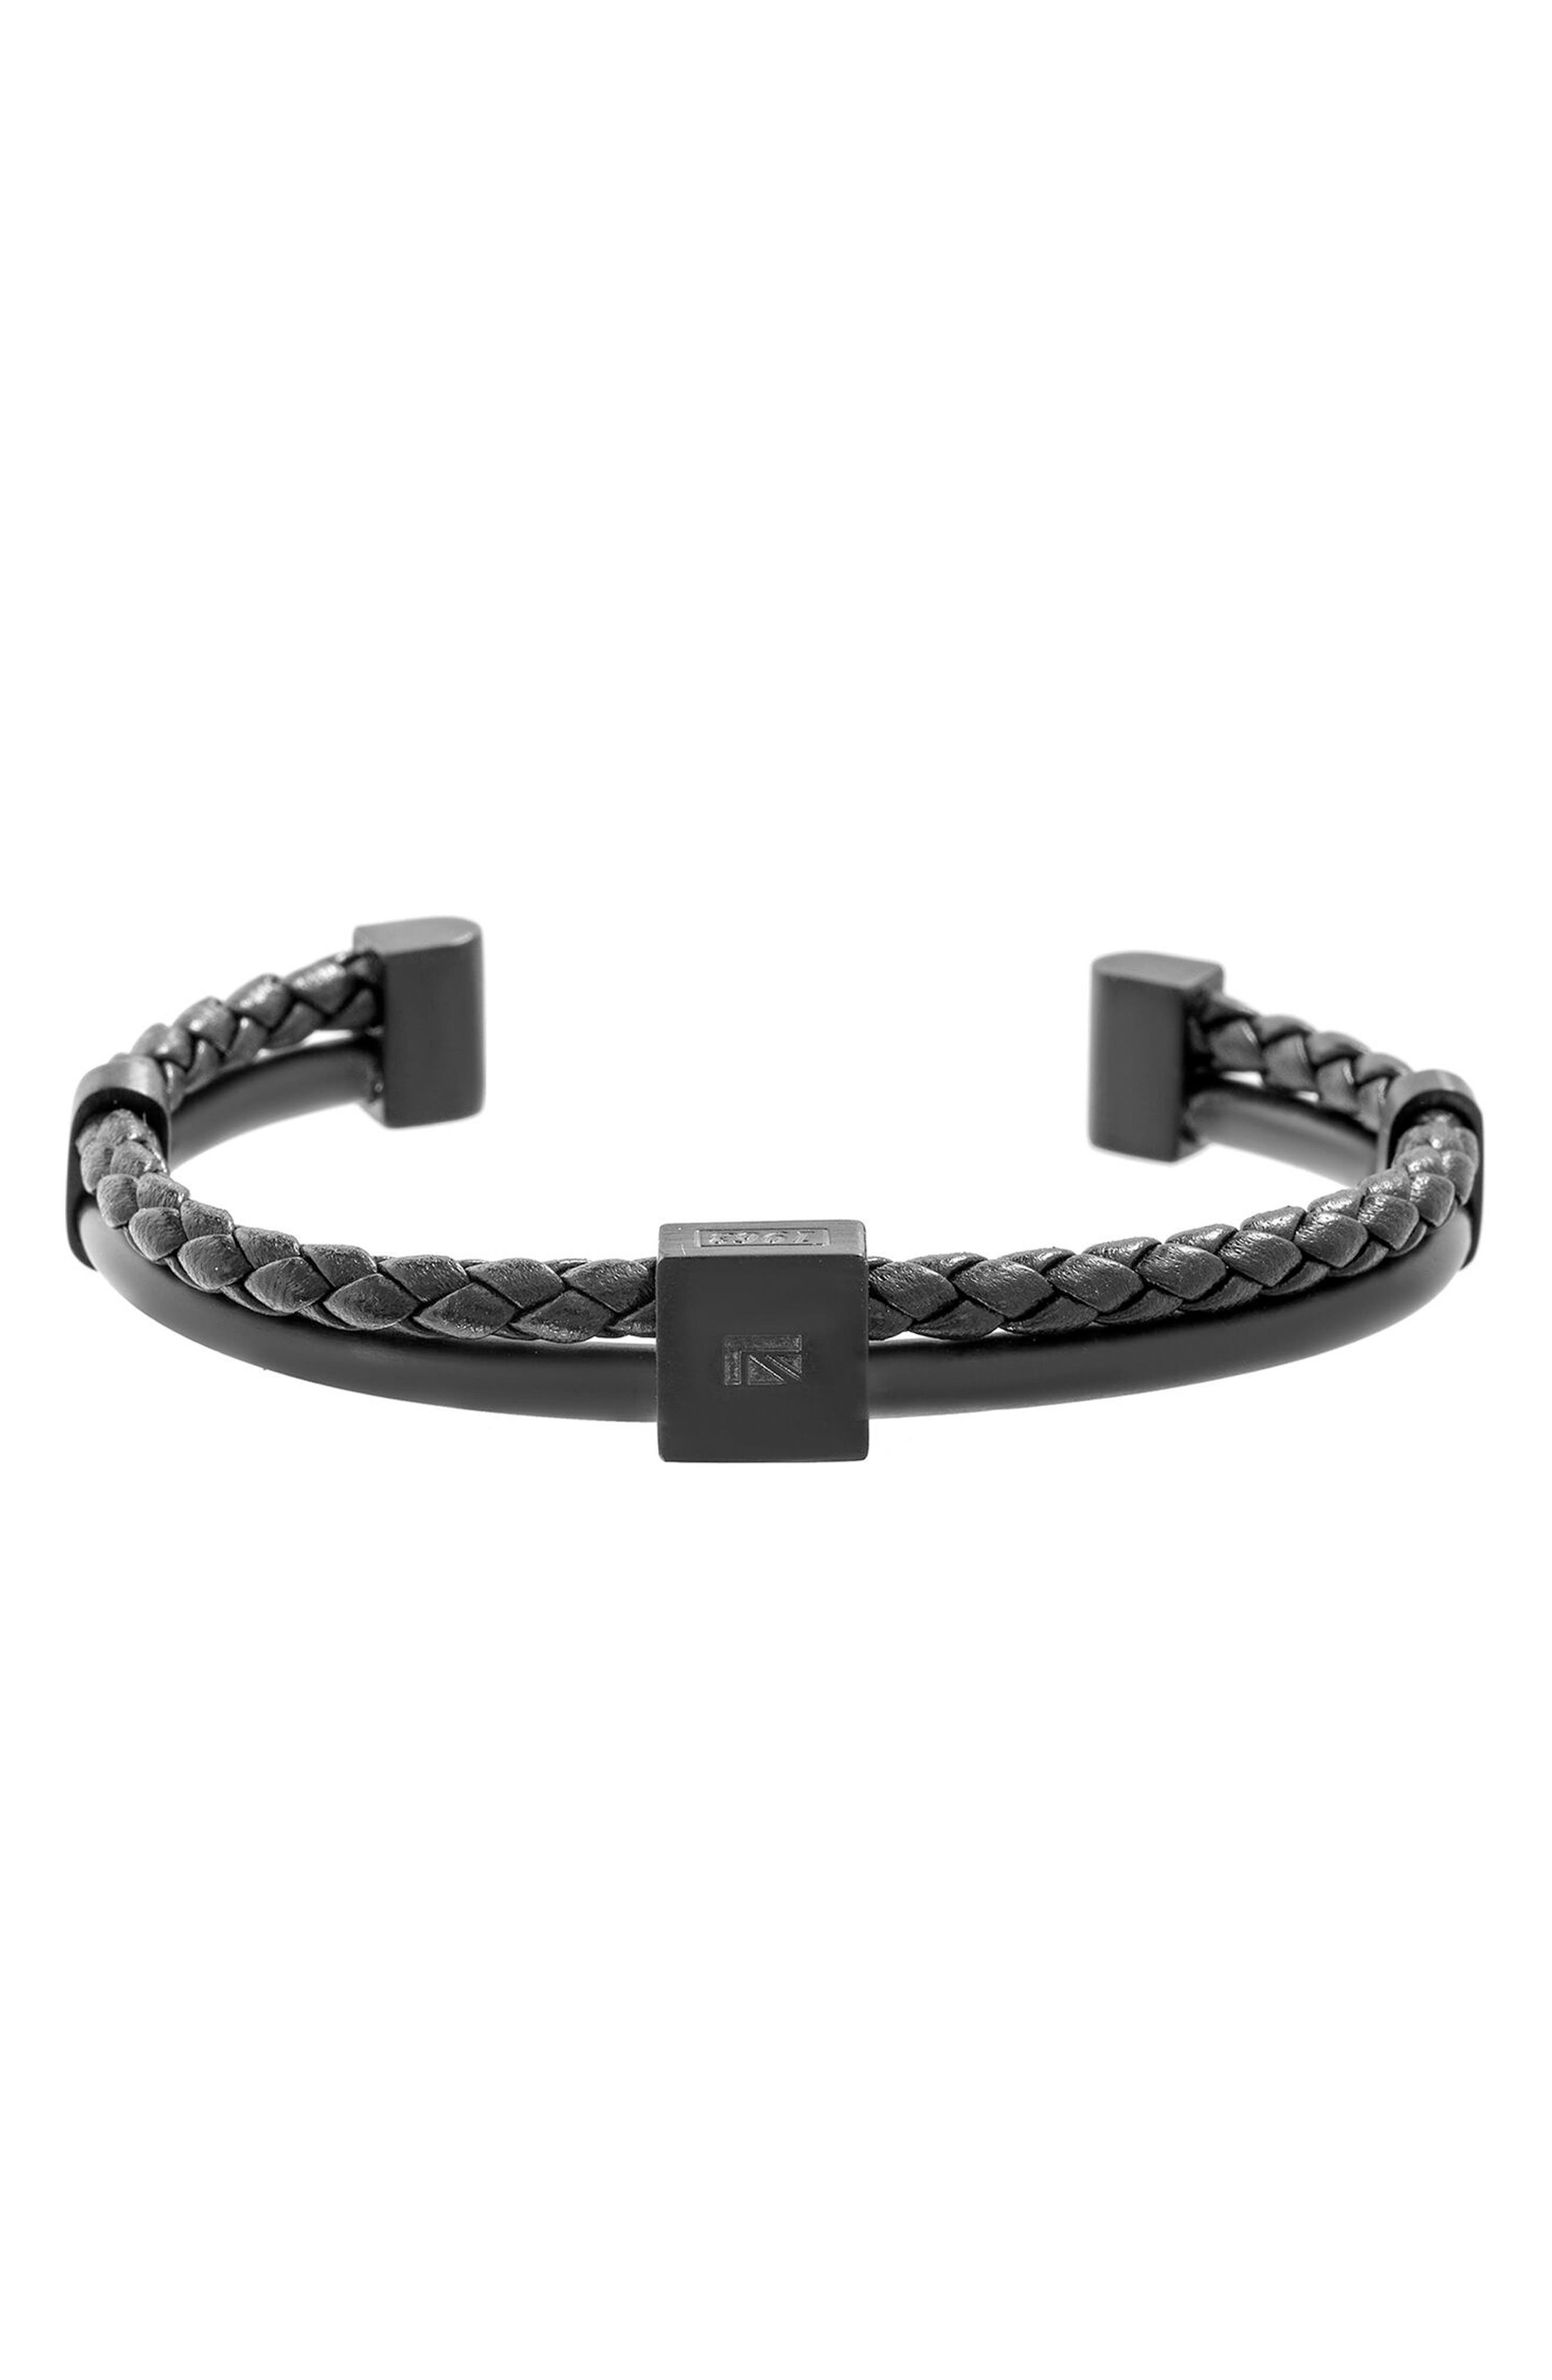 BEN SHERMAN Braided Leather Cuff, Main, color, BLACK